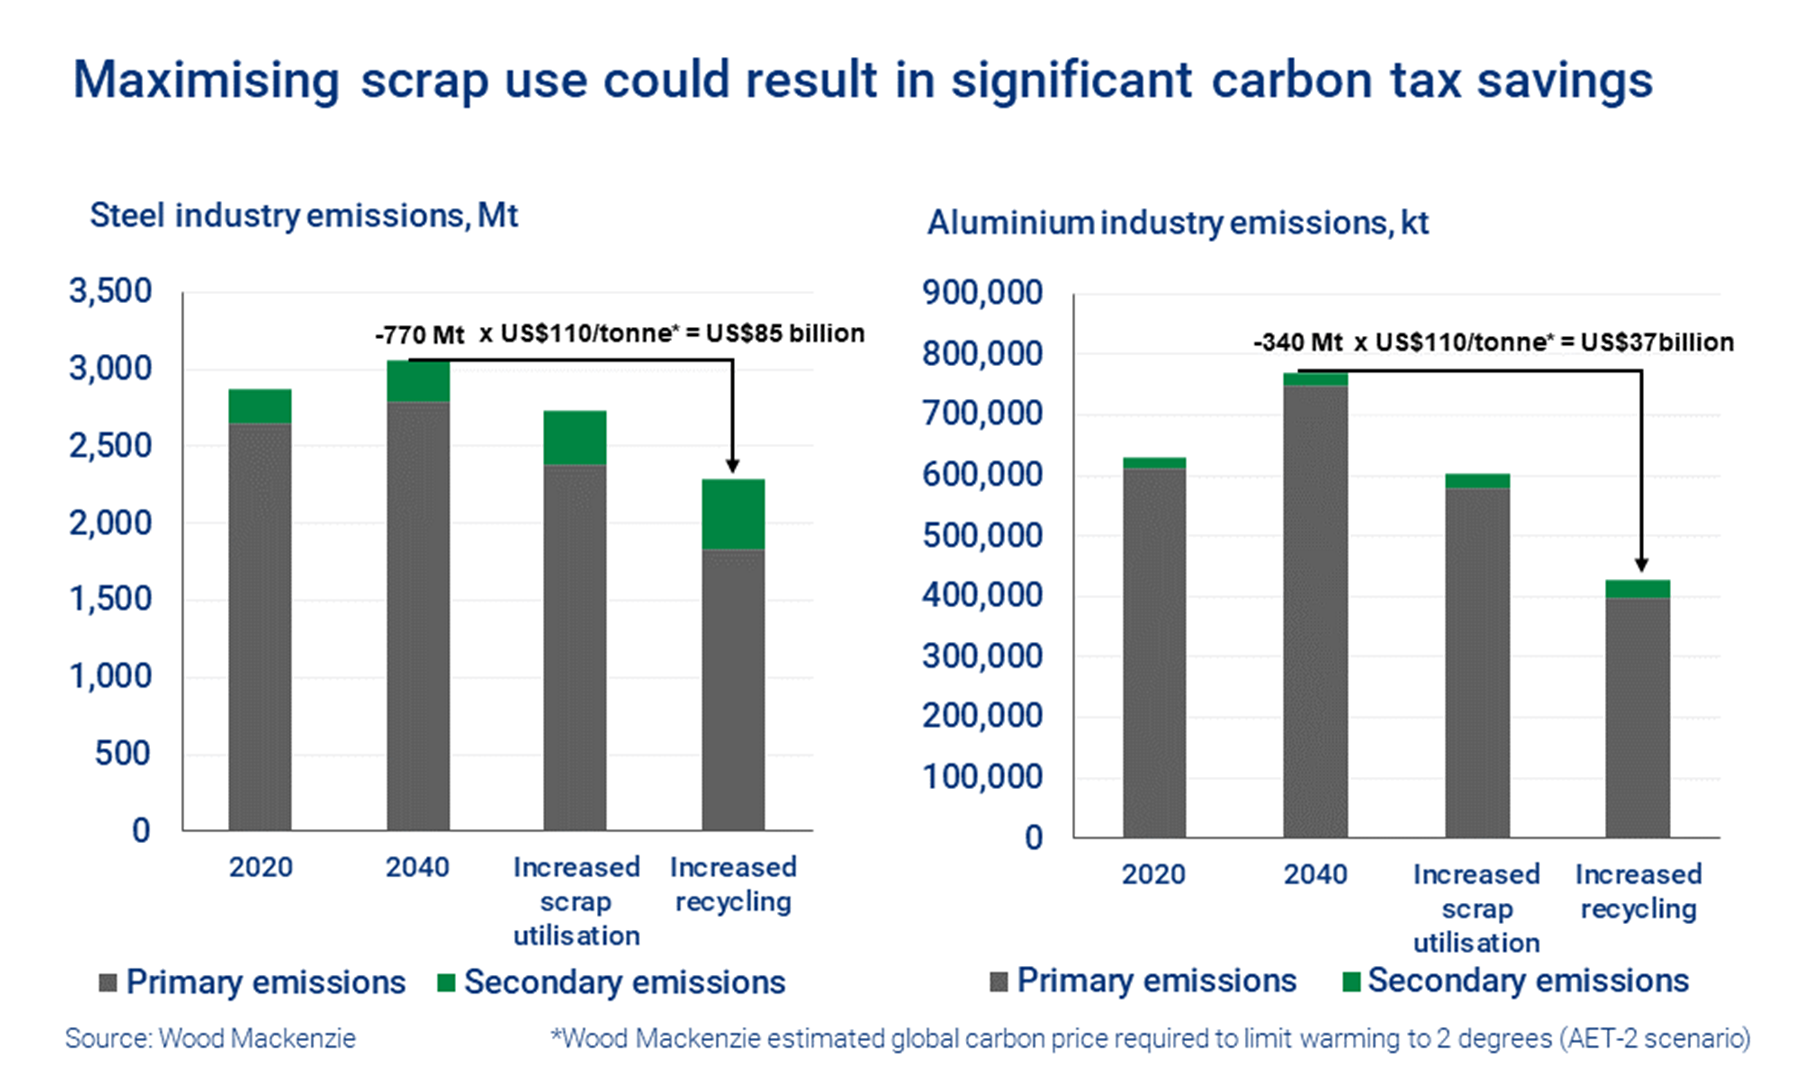 Chart shows maximising scrap use maximising scrap use could result in significant carbon tax savings for steel and aluminium.